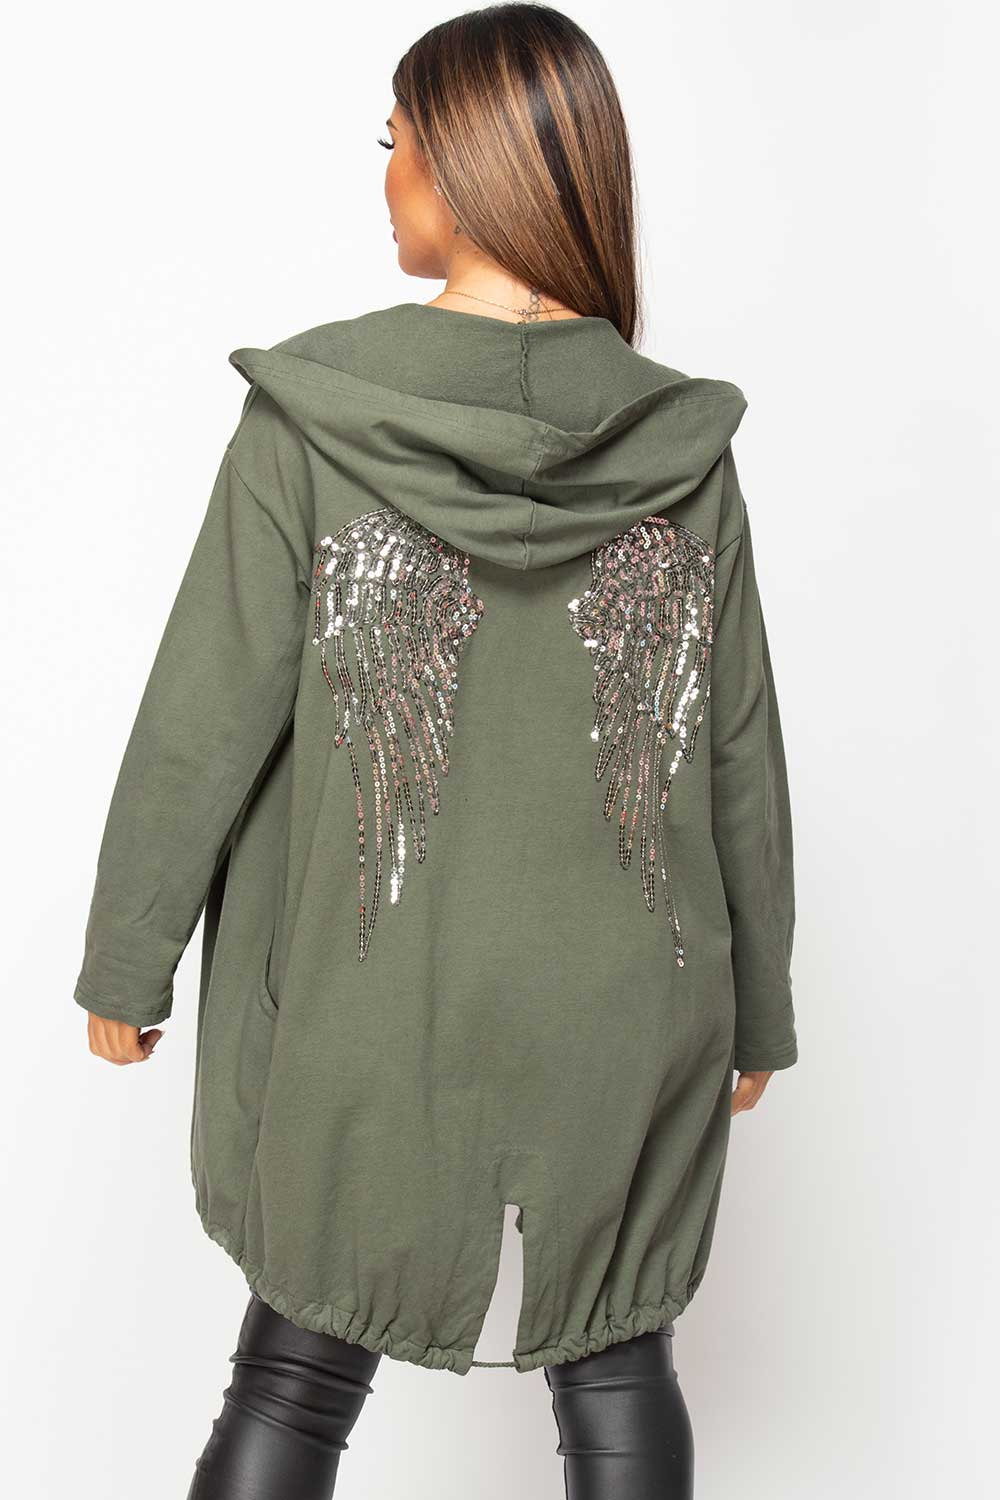 sequin wings khaki oversized hoodie